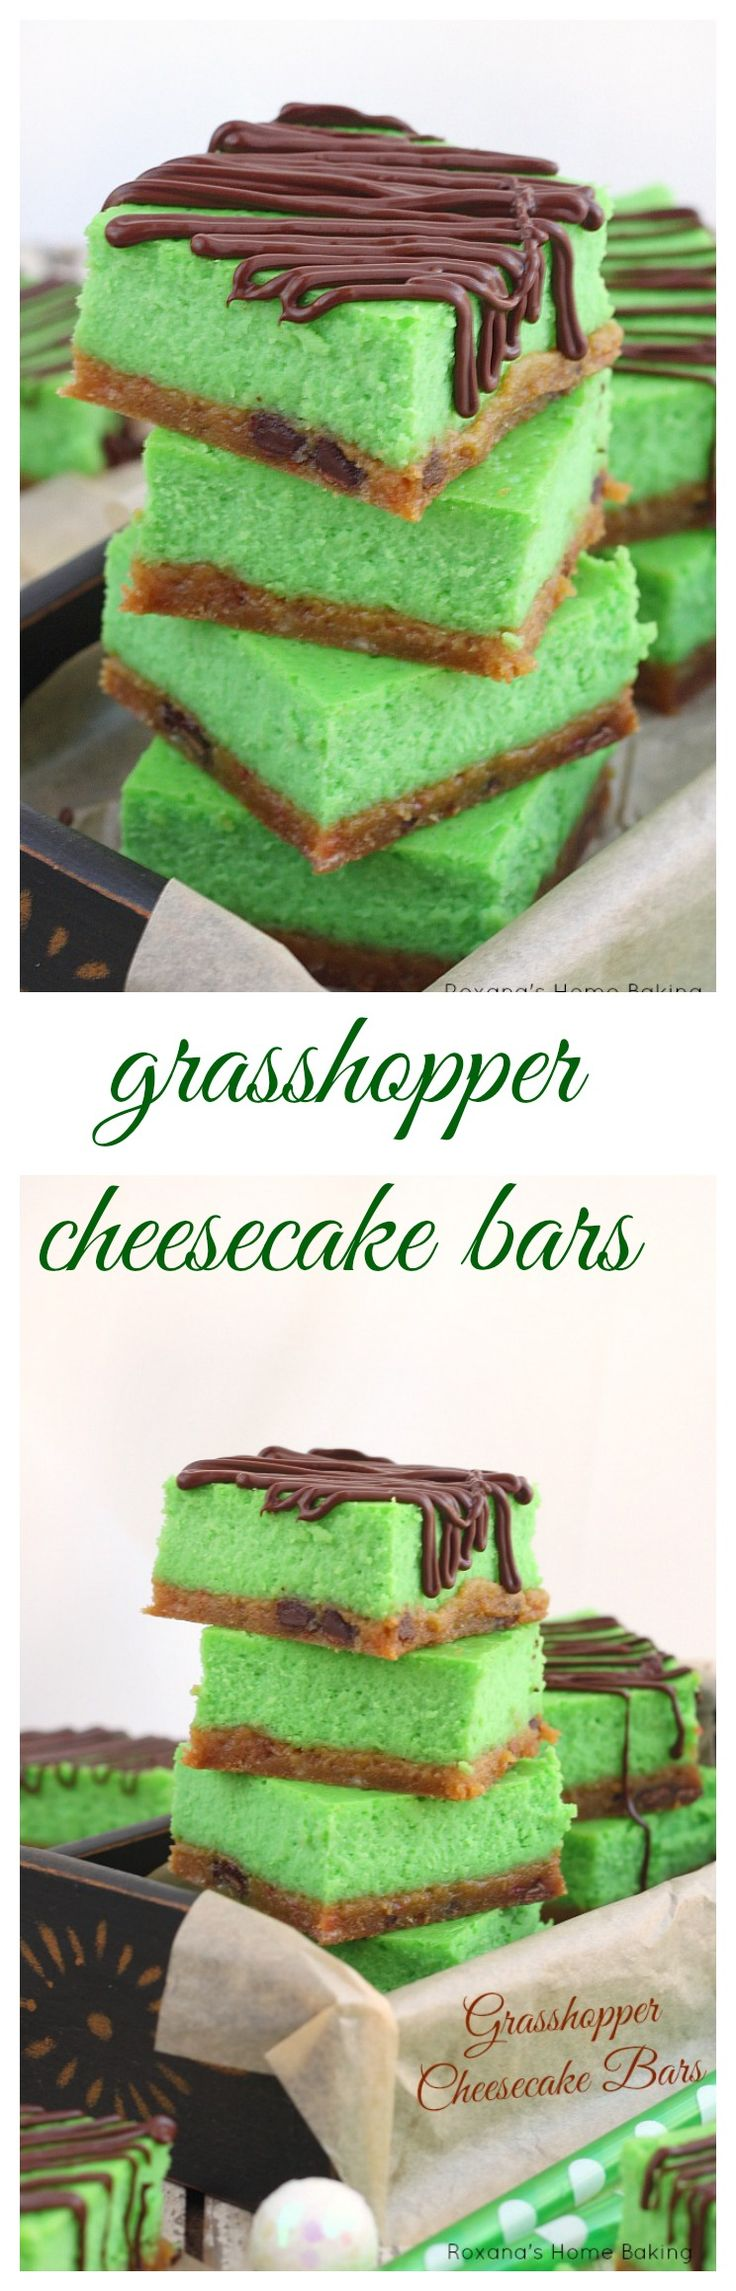 Easy and refreshing grasshopper cheesecake bars with a minty chocolate chip cookie crust, smooth cheesecake and chocolate drizzles. Make them for your holiday table or to enjoy on a hot summer day